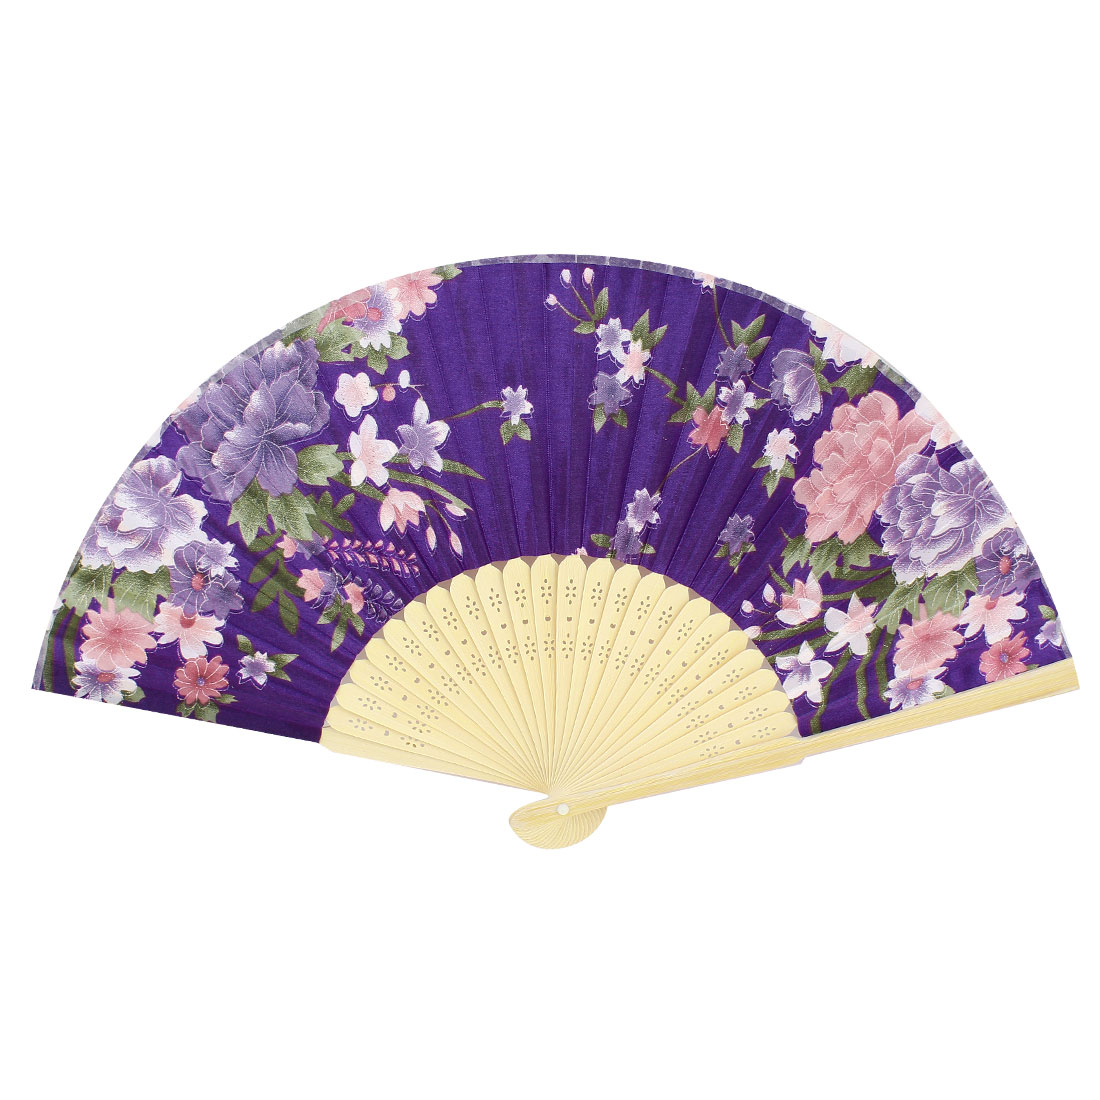 Pink Peony Pattern Bamboo Hollow Out Ribs Folding Hand Fan Purple